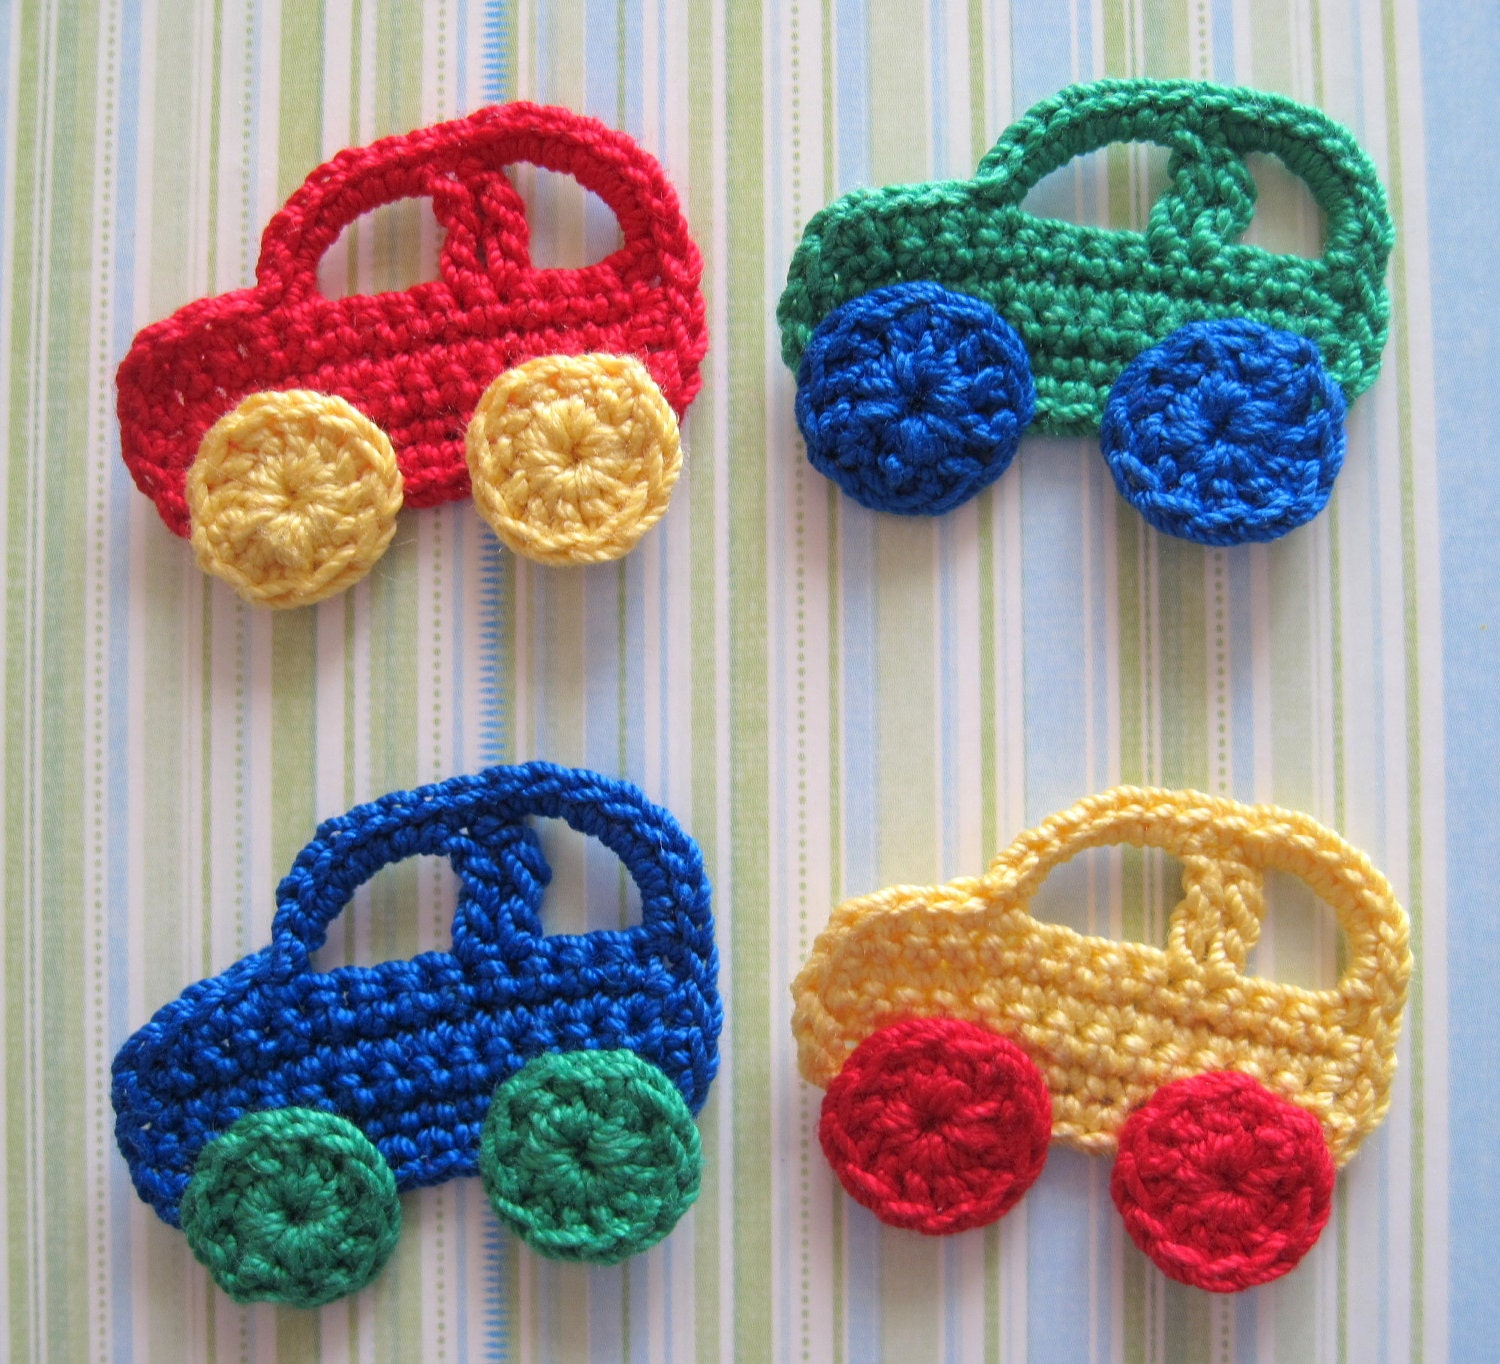 Crochet Applique : crochet free pattern car applique nureffa craft crochet Car Tuning